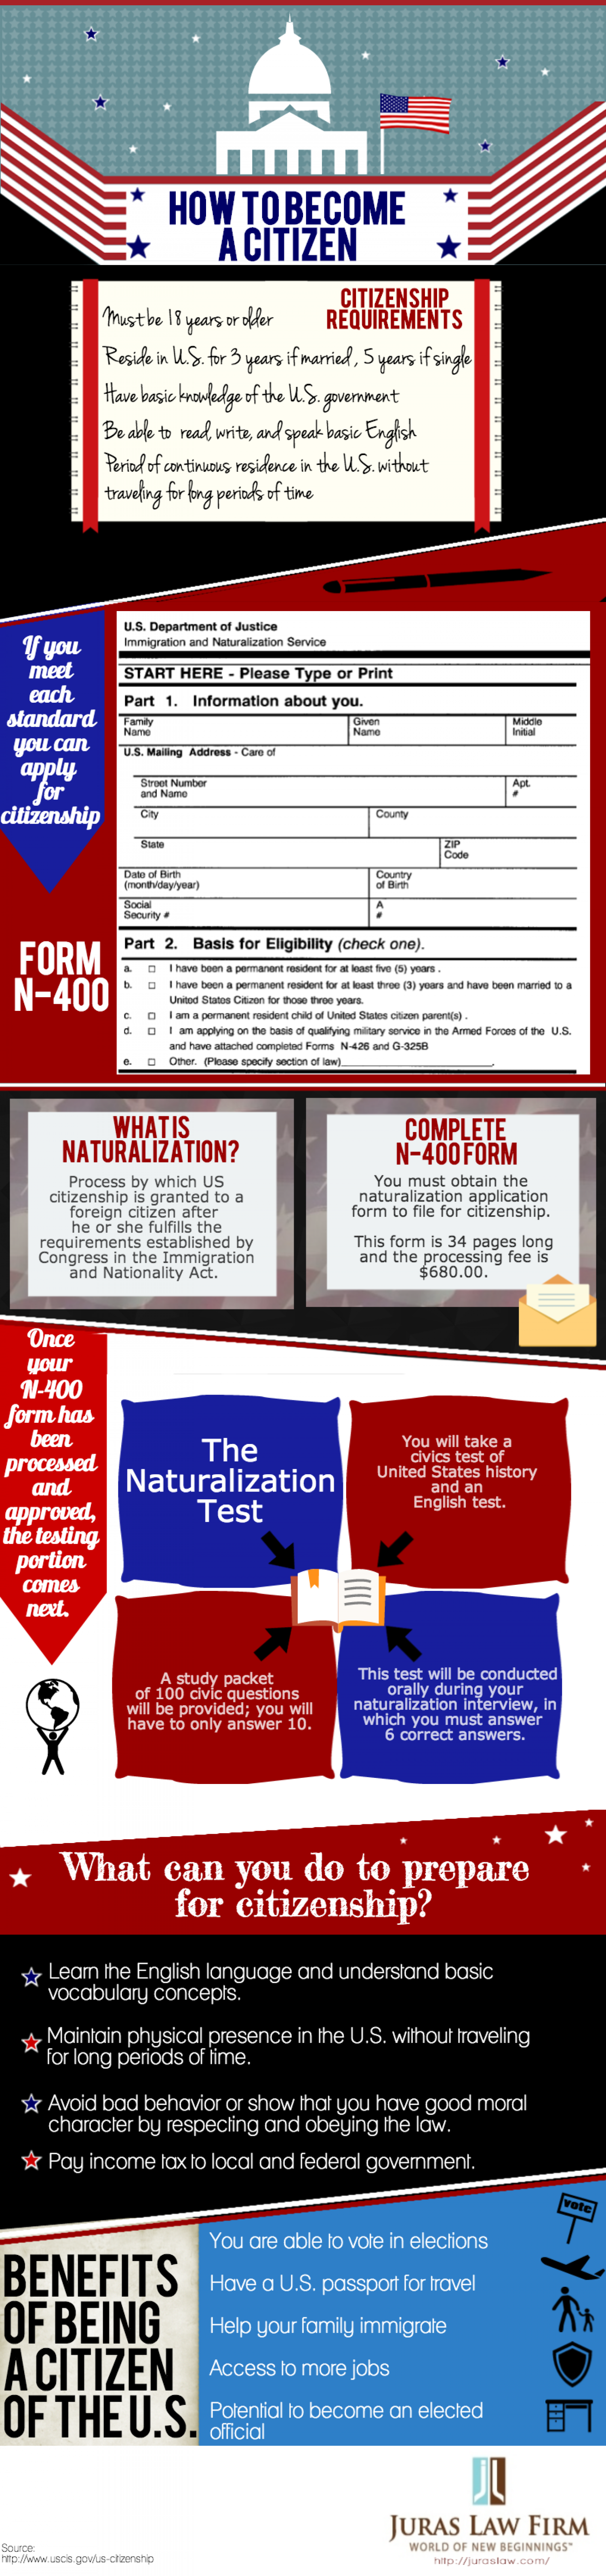 How To Become A Citizen Infographic